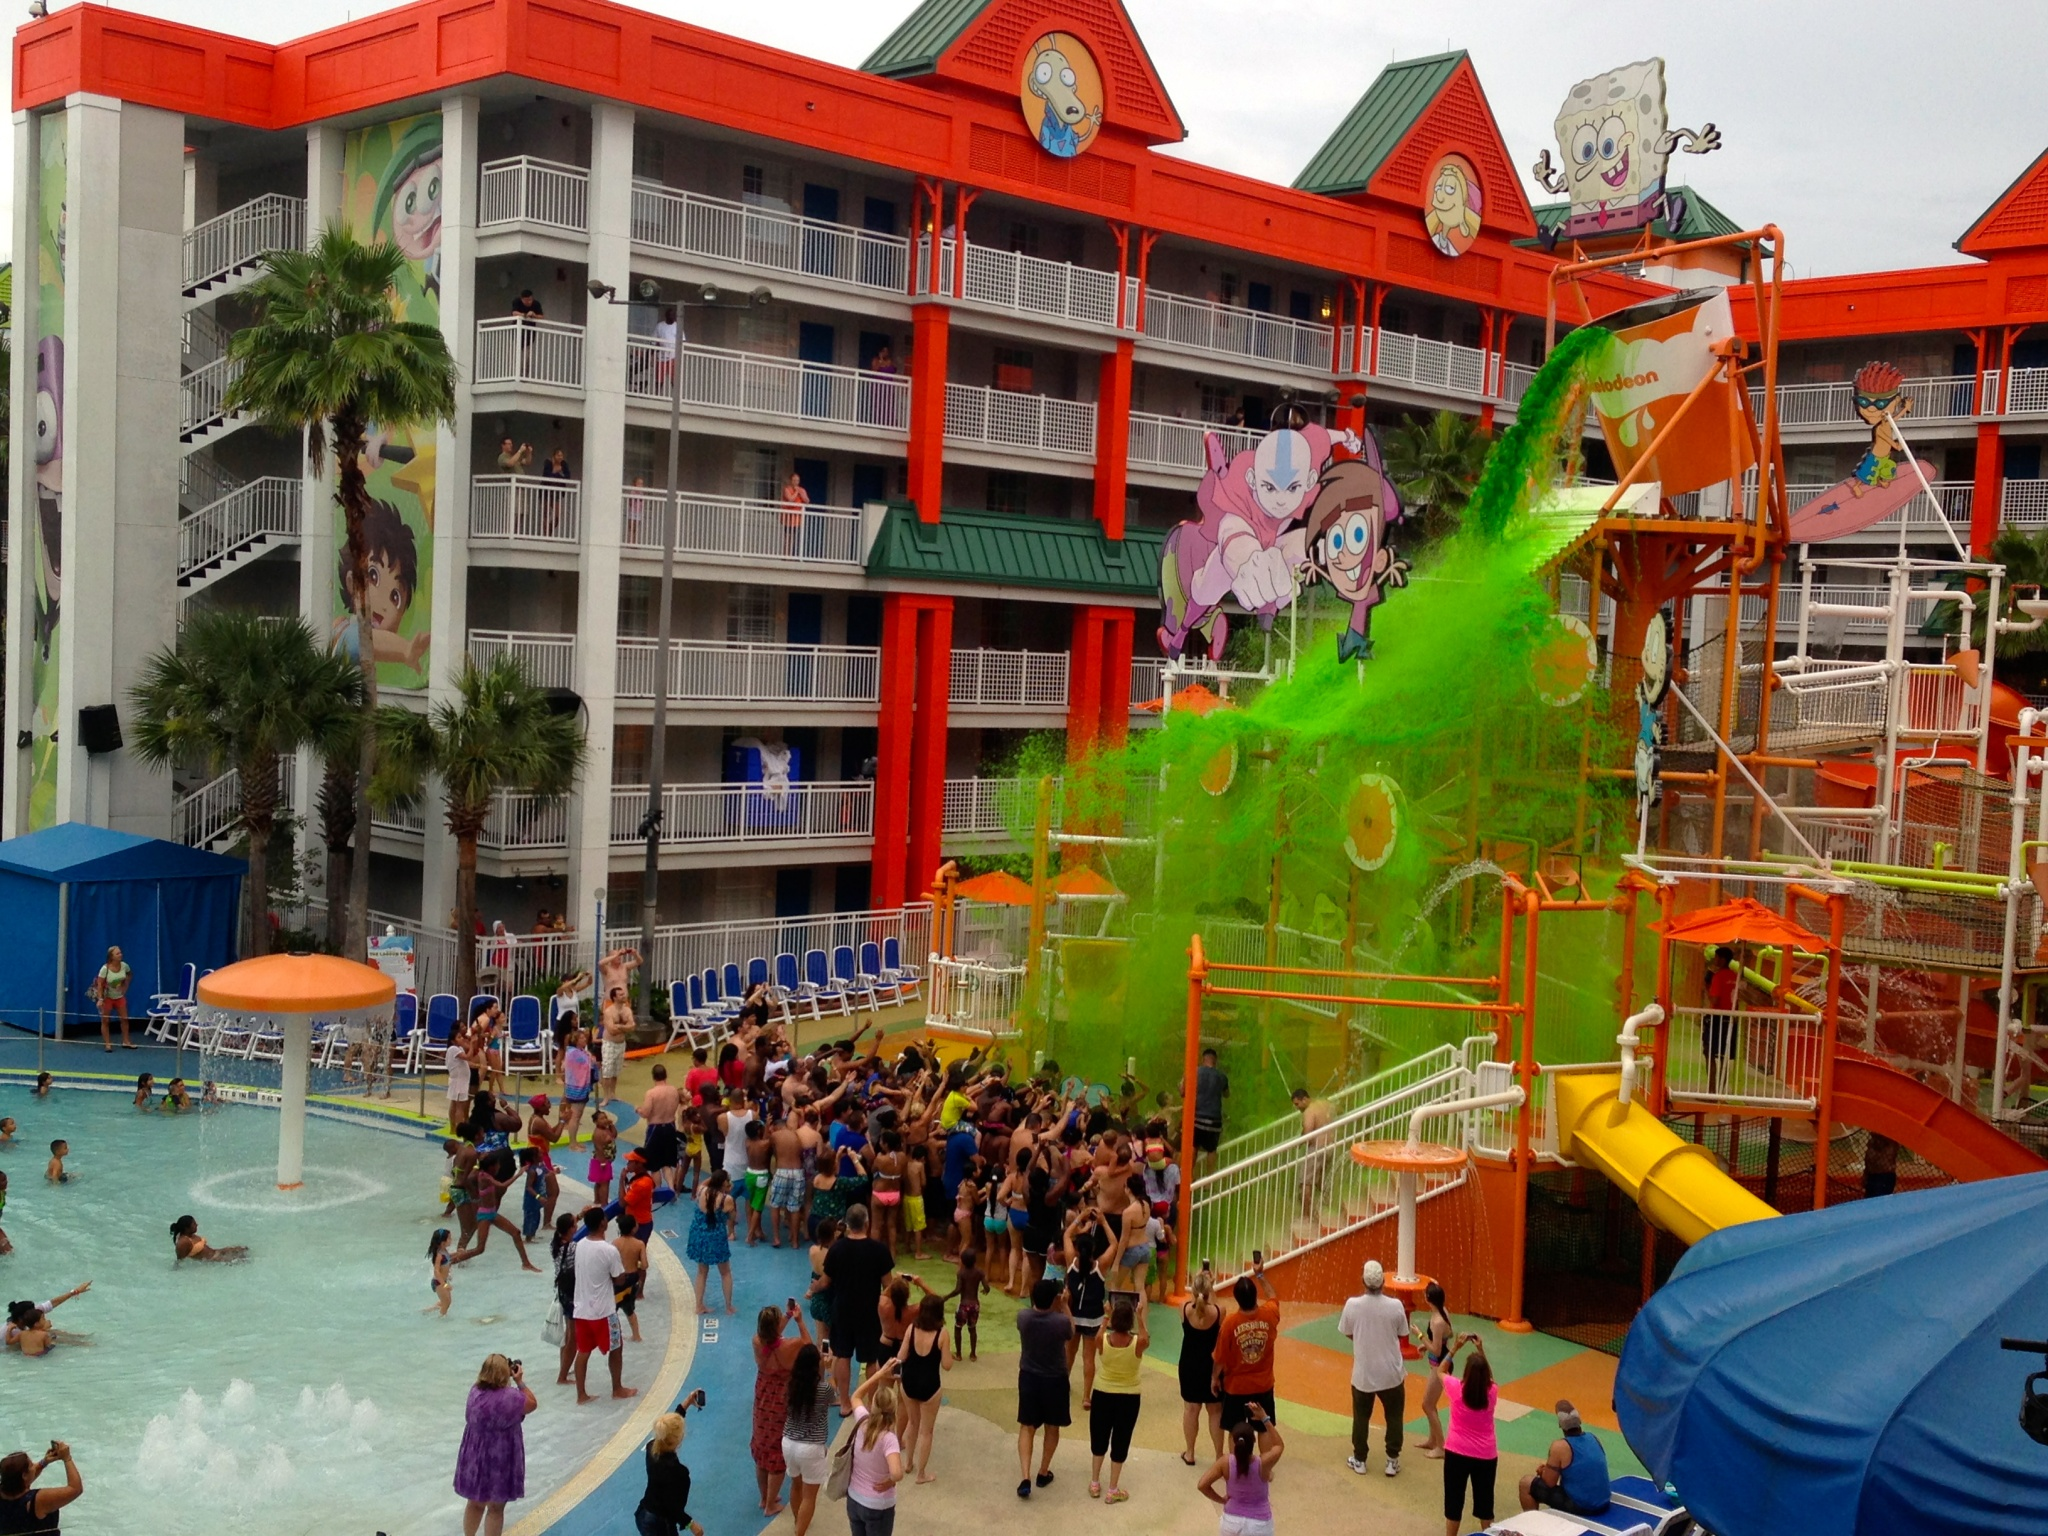 Orlando Family Summer Why Staying At The Nick Hotel Is A Great Idea